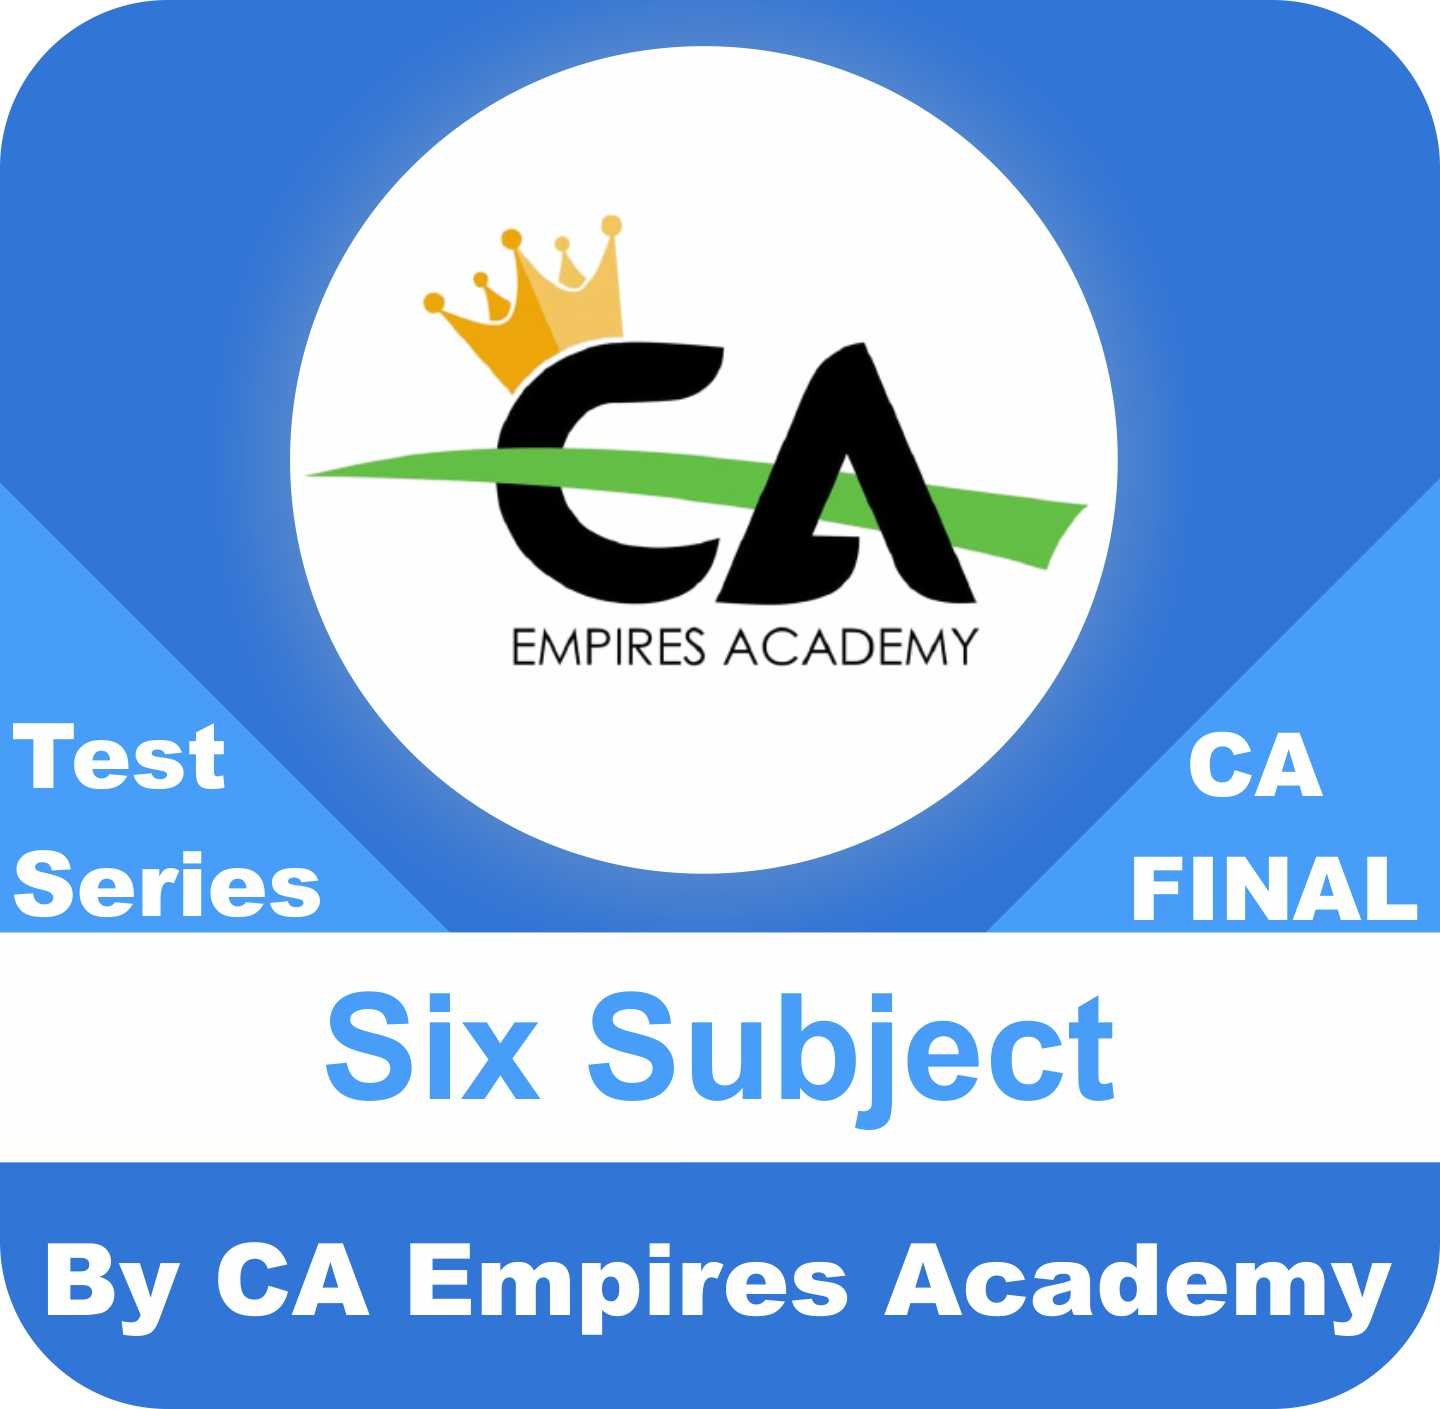 CA Final Any Six Subject Test Series in Platinum Plan by CA Empires Academy